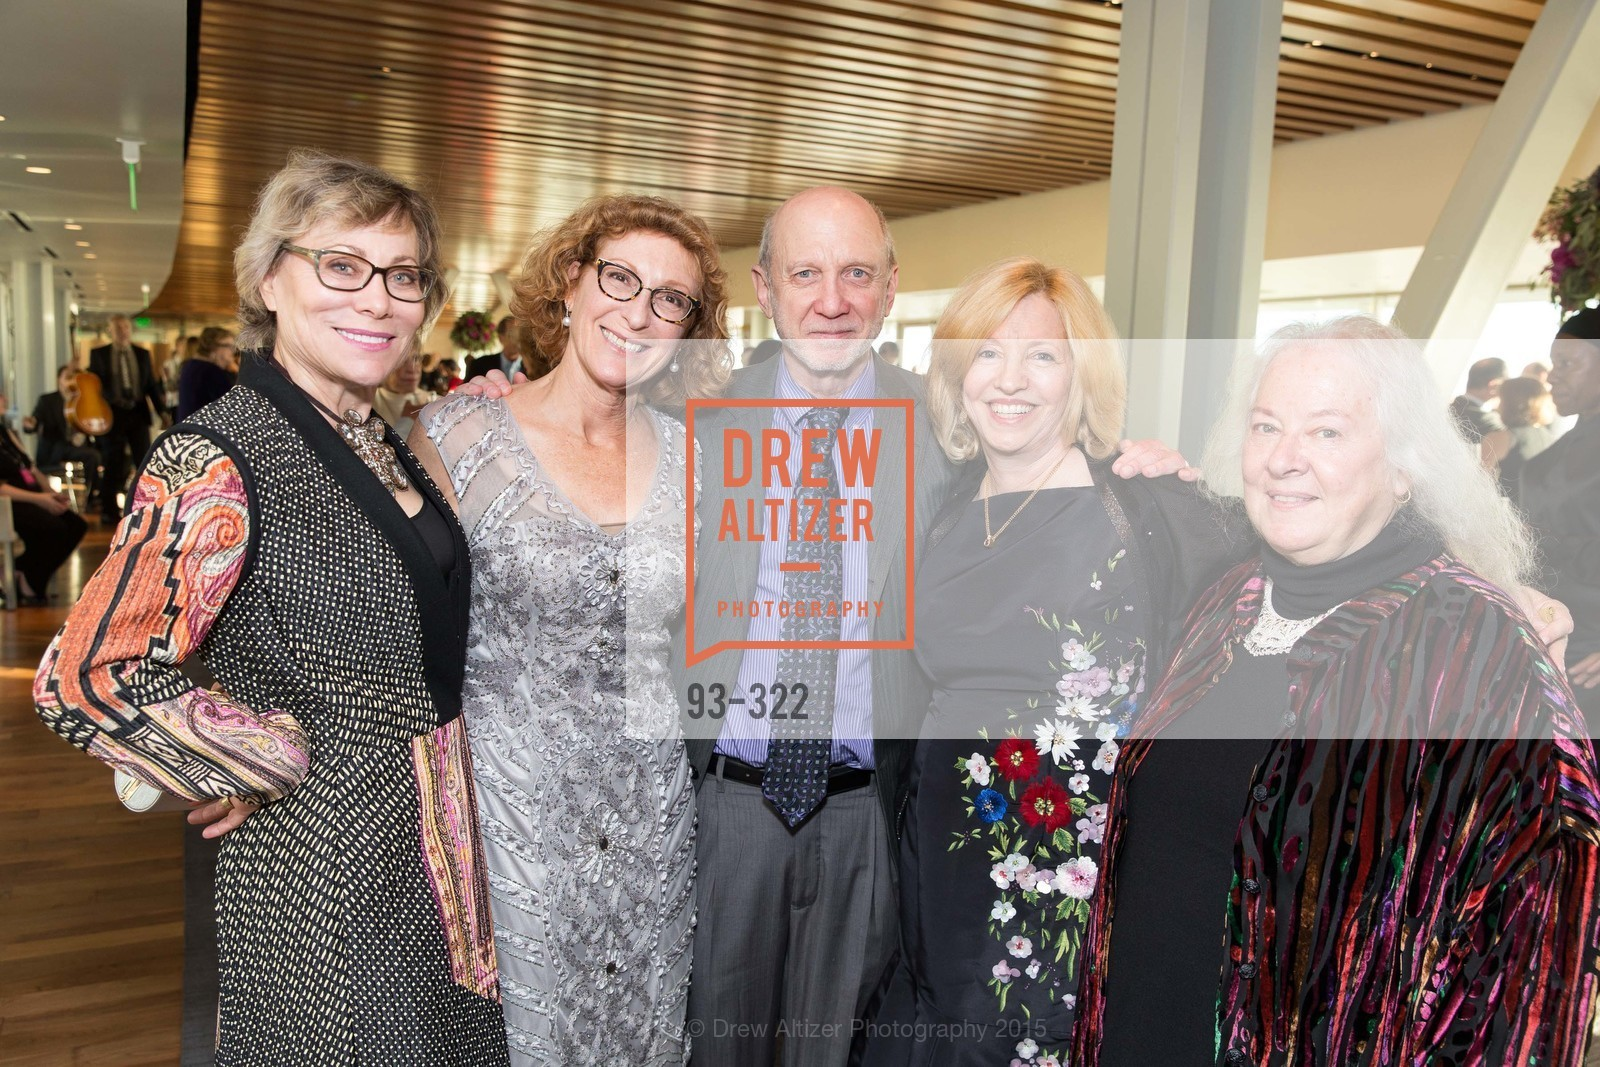 Leigh Teece, Maris Meyerson, Dan Rubinfeld, Gail Rubinfeld, Helen Meyer, Gala at The Greek Benefiting Cal Performances, UC Berkeley's Greek Theatre. 2001 Gayley Rd, September 25th, 2015,Drew Altizer, Drew Altizer Photography, full-service agency, private events, San Francisco photographer, photographer california